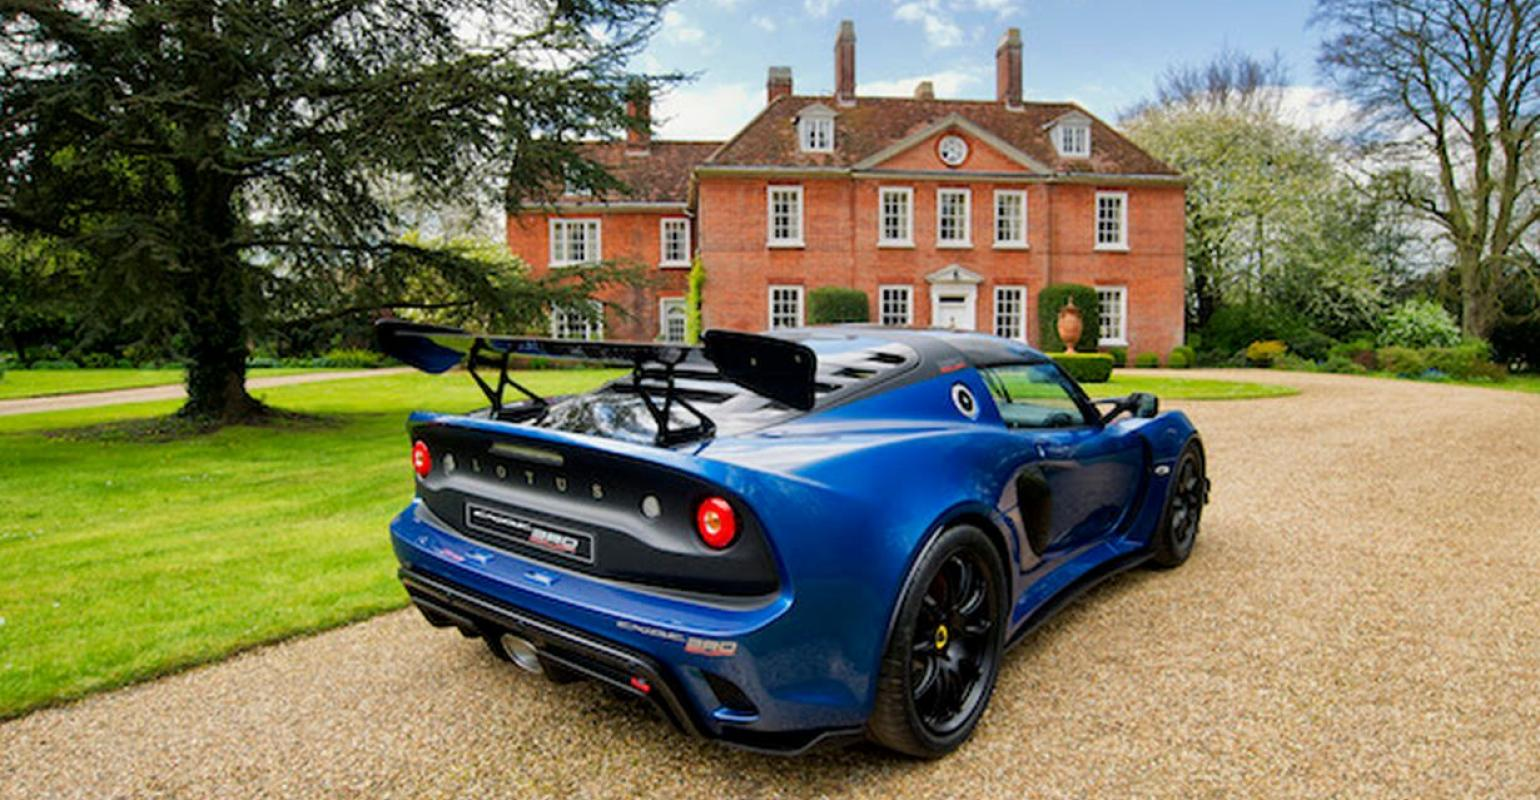 Lotus Elise 0 60 >> Lotus Newest Exige Model Both Street Legal And Race Ready